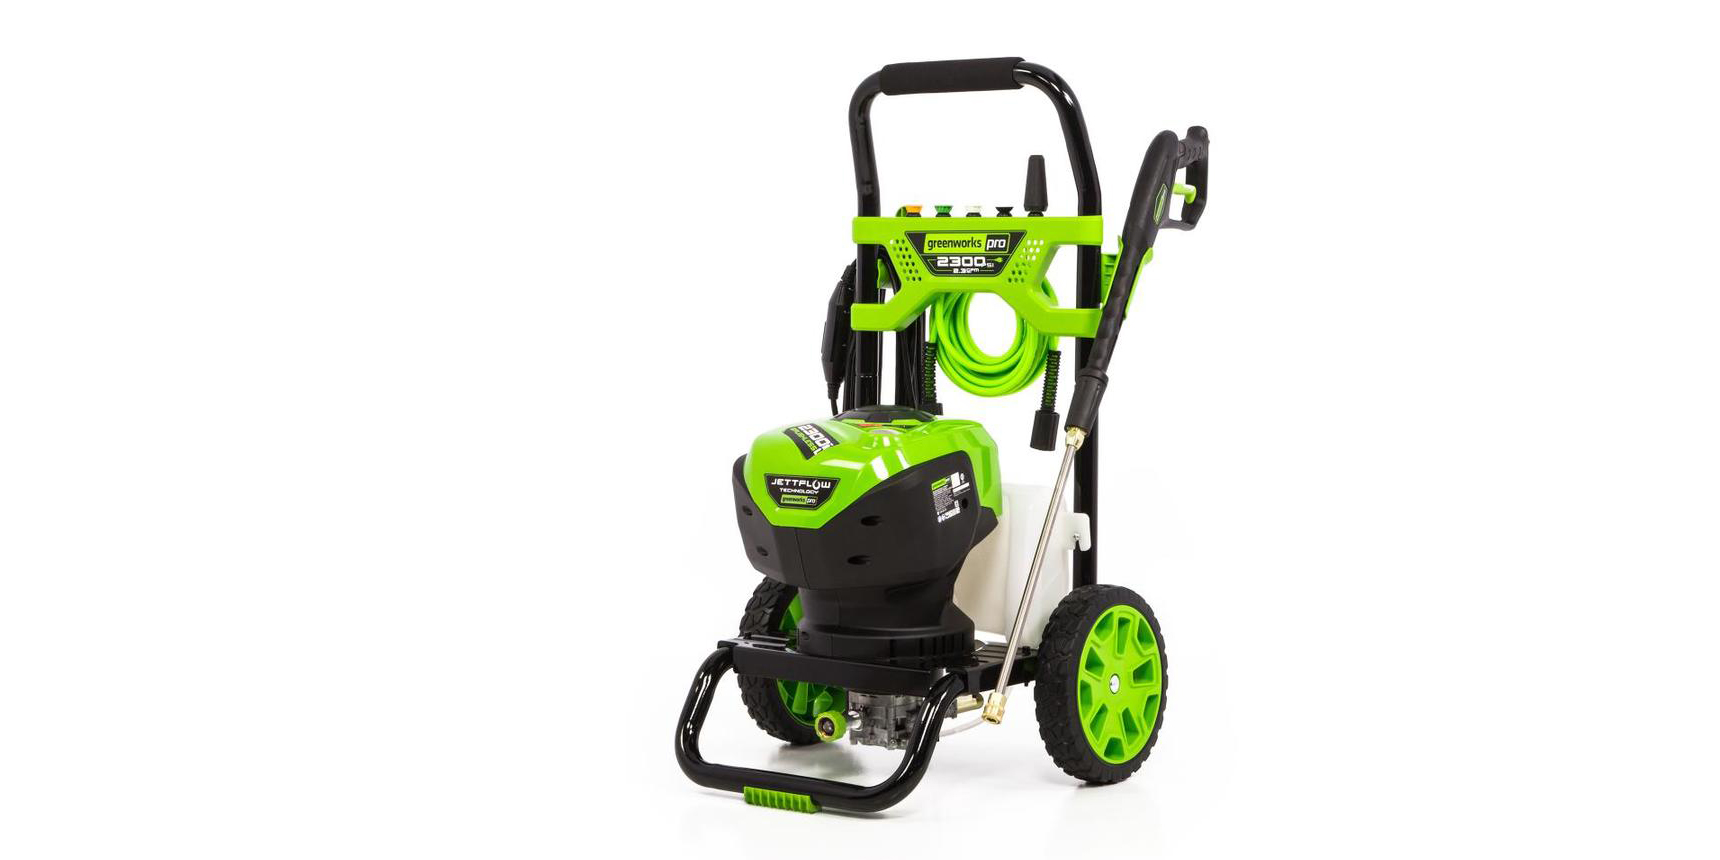 Pick up a Greenworks Pro Electric Pressure Washer for 33% off, Sylvania LED bulbs and more in today's Green Deals